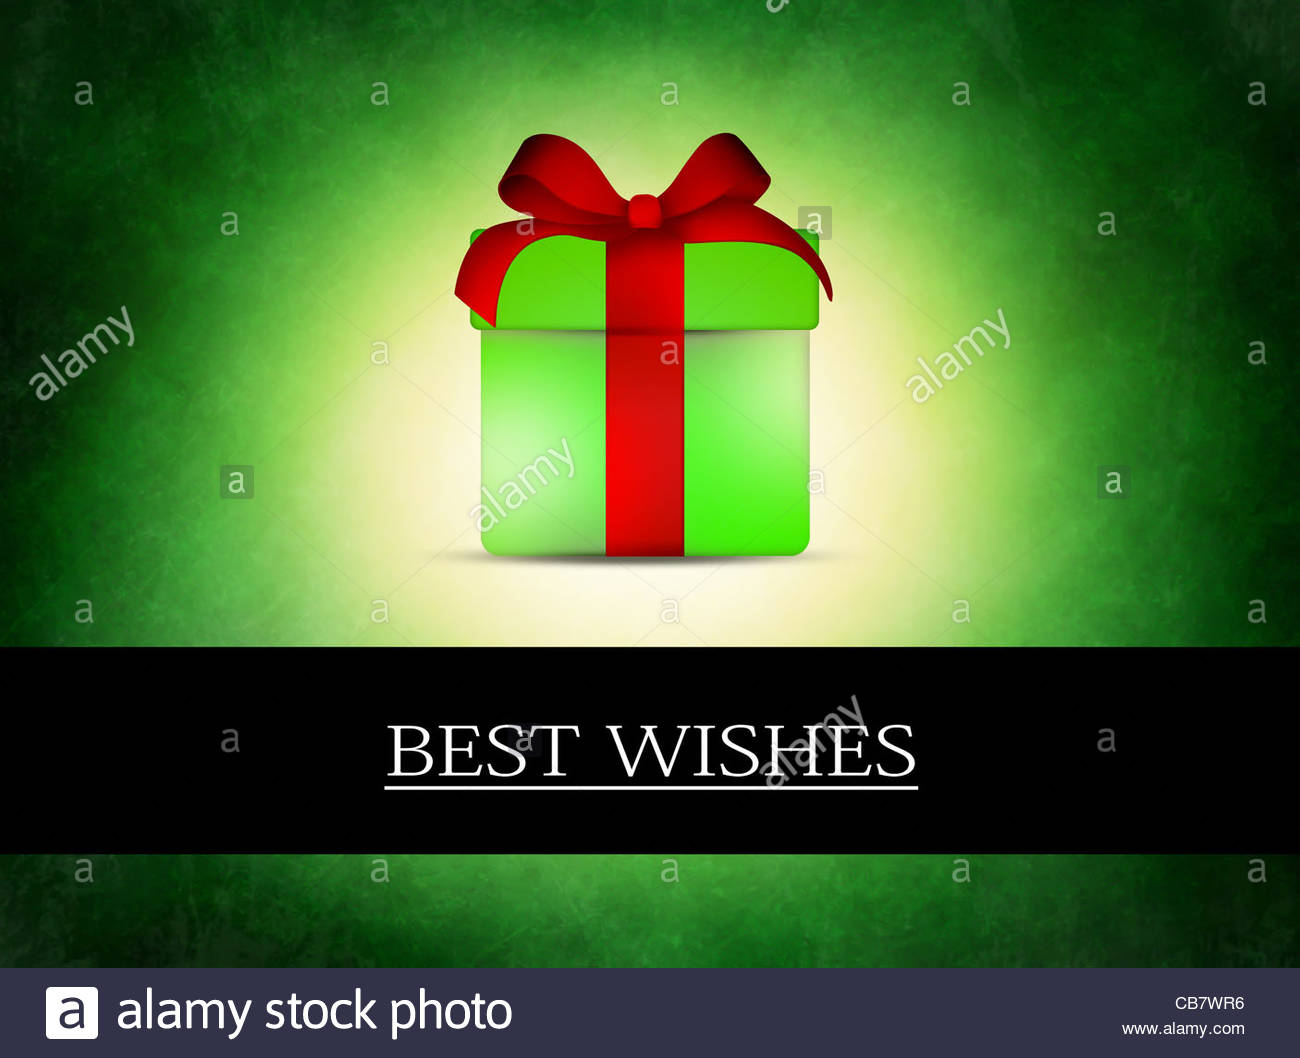 best wishes - Stock Image